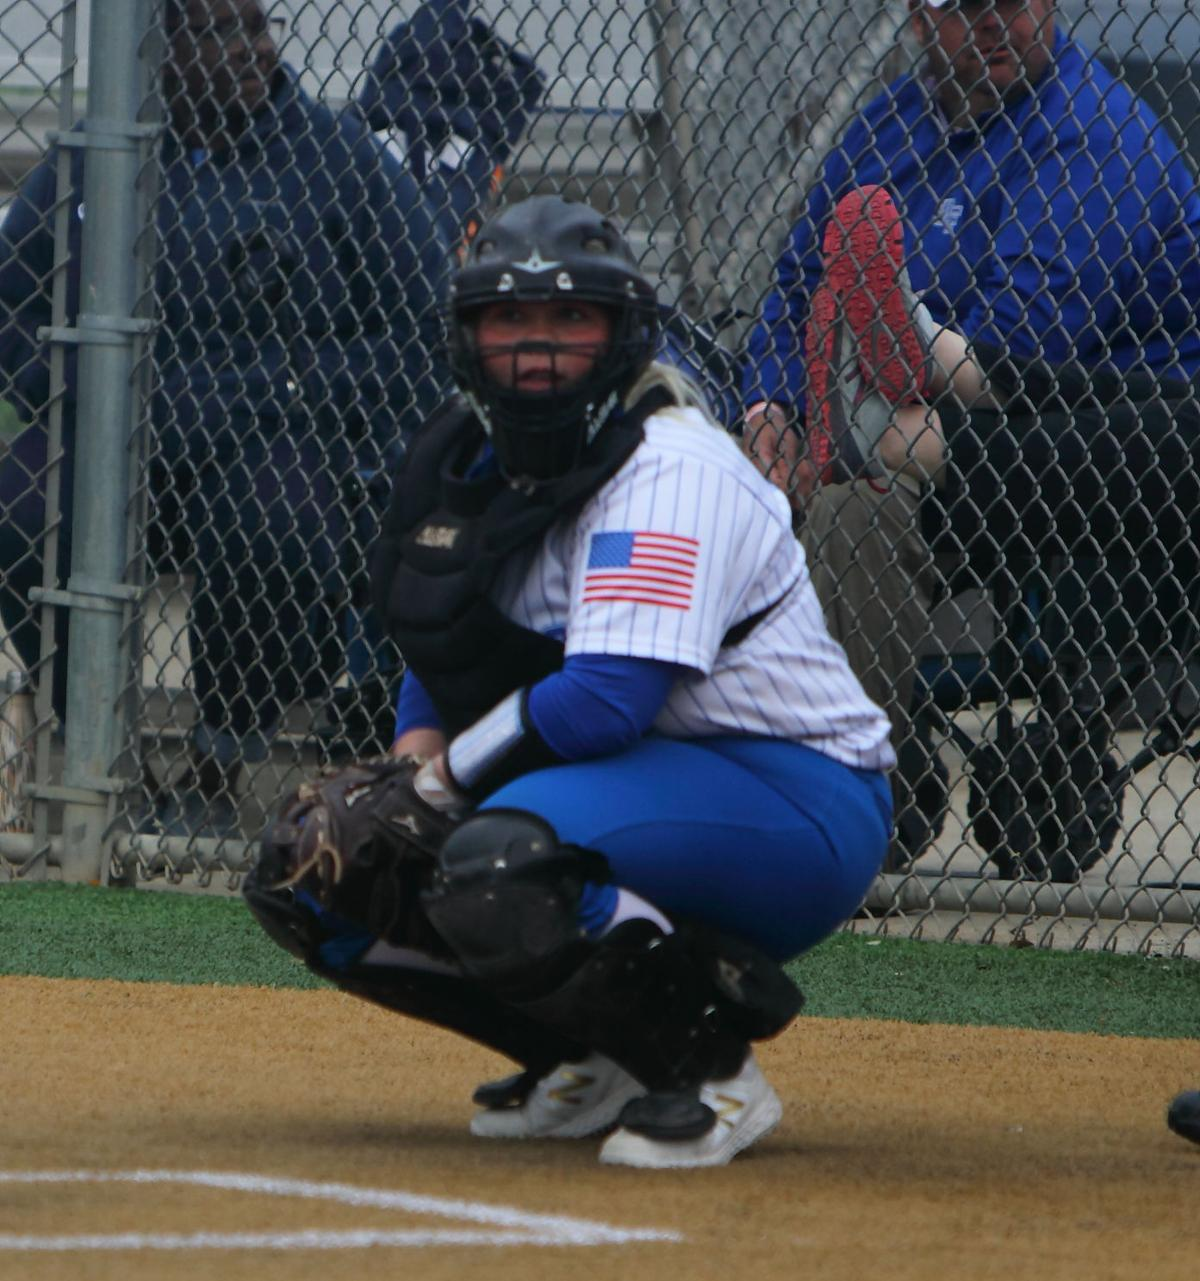 Springfield softball vs. West Feliciana: Cheyanne Morrs